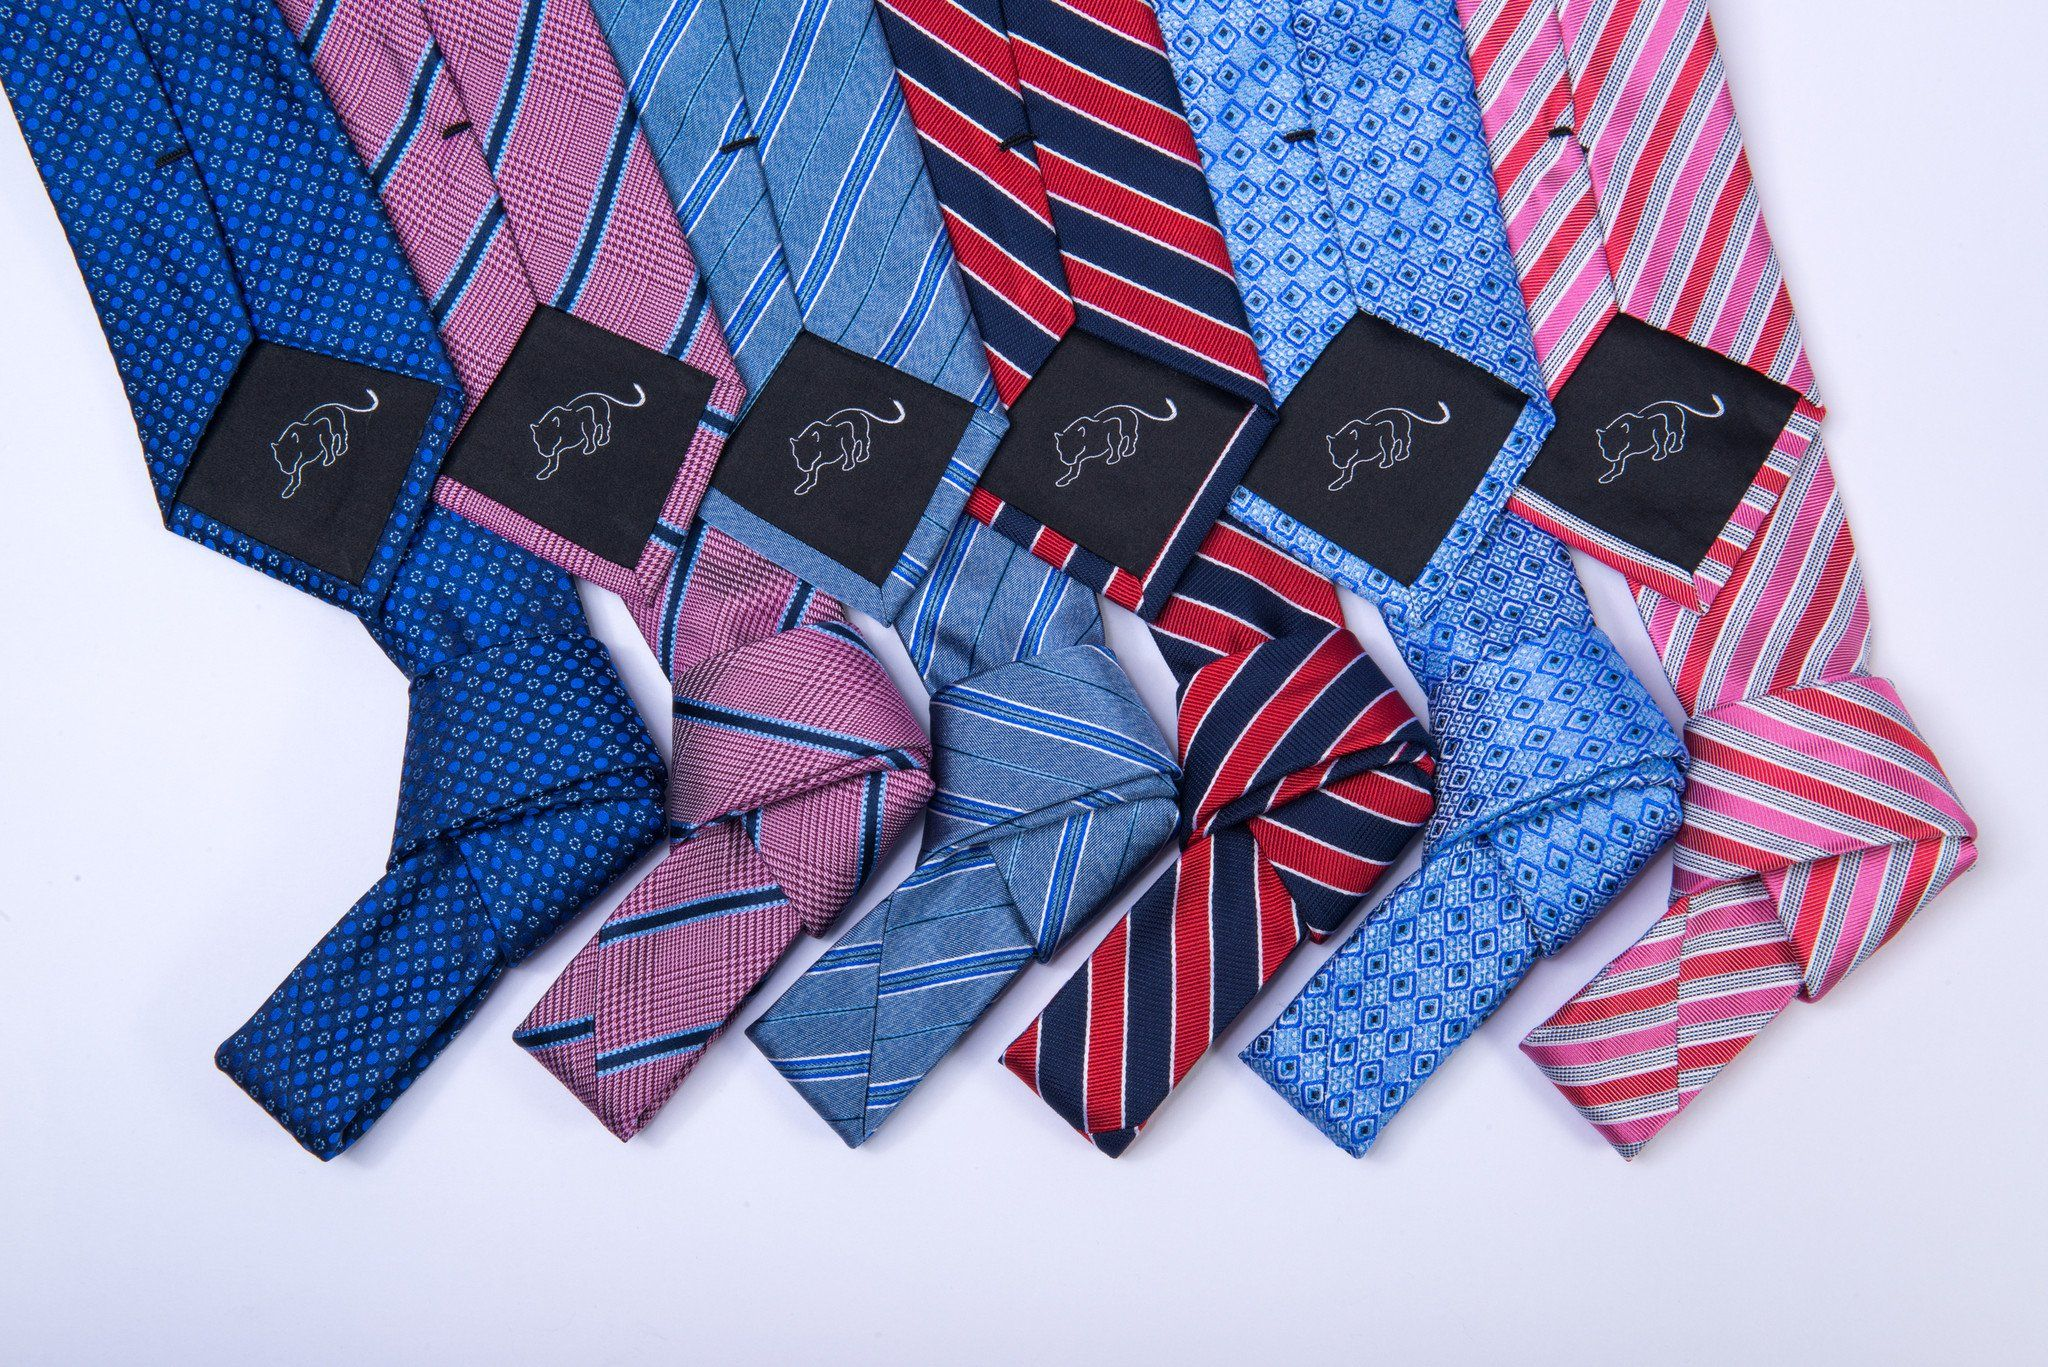 Tie of the month club Tie and pocket square, Tie, Tie